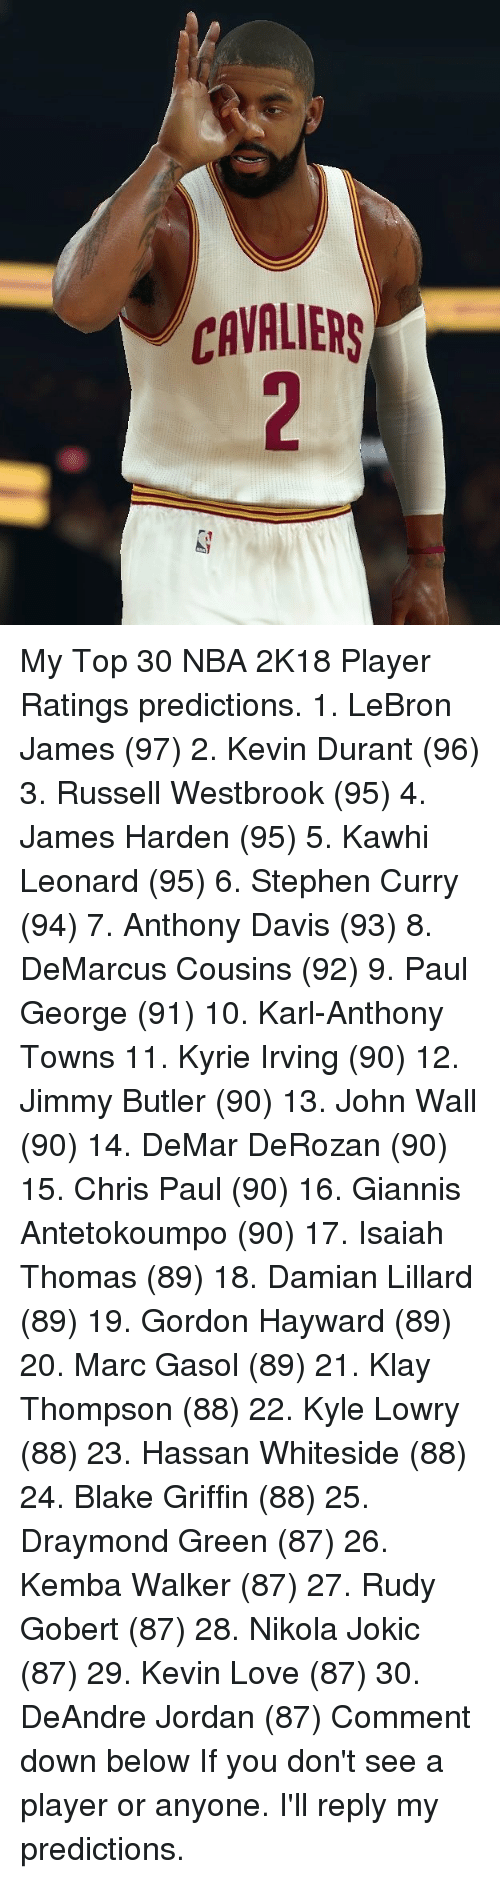 Karling: CAVALIERS My Top 30 NBA 2K18 Player Ratings predictions. 1. LeBron James (97) 2. Kevin Durant (96) 3. Russell Westbrook (95) 4. James Harden (95) 5. Kawhi Leonard (95) 6. Stephen Curry (94) 7. Anthony Davis (93) 8. DeMarcus Cousins (92) 9. Paul George (91) 10. Karl-Anthony Towns 11. Kyrie Irving (90) 12. Jimmy Butler (90) 13. John Wall (90) 14. DeMar DeRozan (90) 15. Chris Paul (90) 16. Giannis Antetokoumpo (90) 17. Isaiah Thomas (89) 18. Damian Lillard (89) 19. Gordon Hayward (89) 20. Marc Gasol (89) 21. Klay Thompson (88) 22. Kyle Lowry (88) 23. Hassan Whiteside (88) 24. Blake Griffin (88) 25. Draymond Green (87) 26. Kemba Walker (87) 27. Rudy Gobert (87) 28. Nikola Jokic (87) 29. Kevin Love (87) 30. DeAndre Jordan (87) Comment down below If you don't see a player or anyone. I'll reply my predictions.